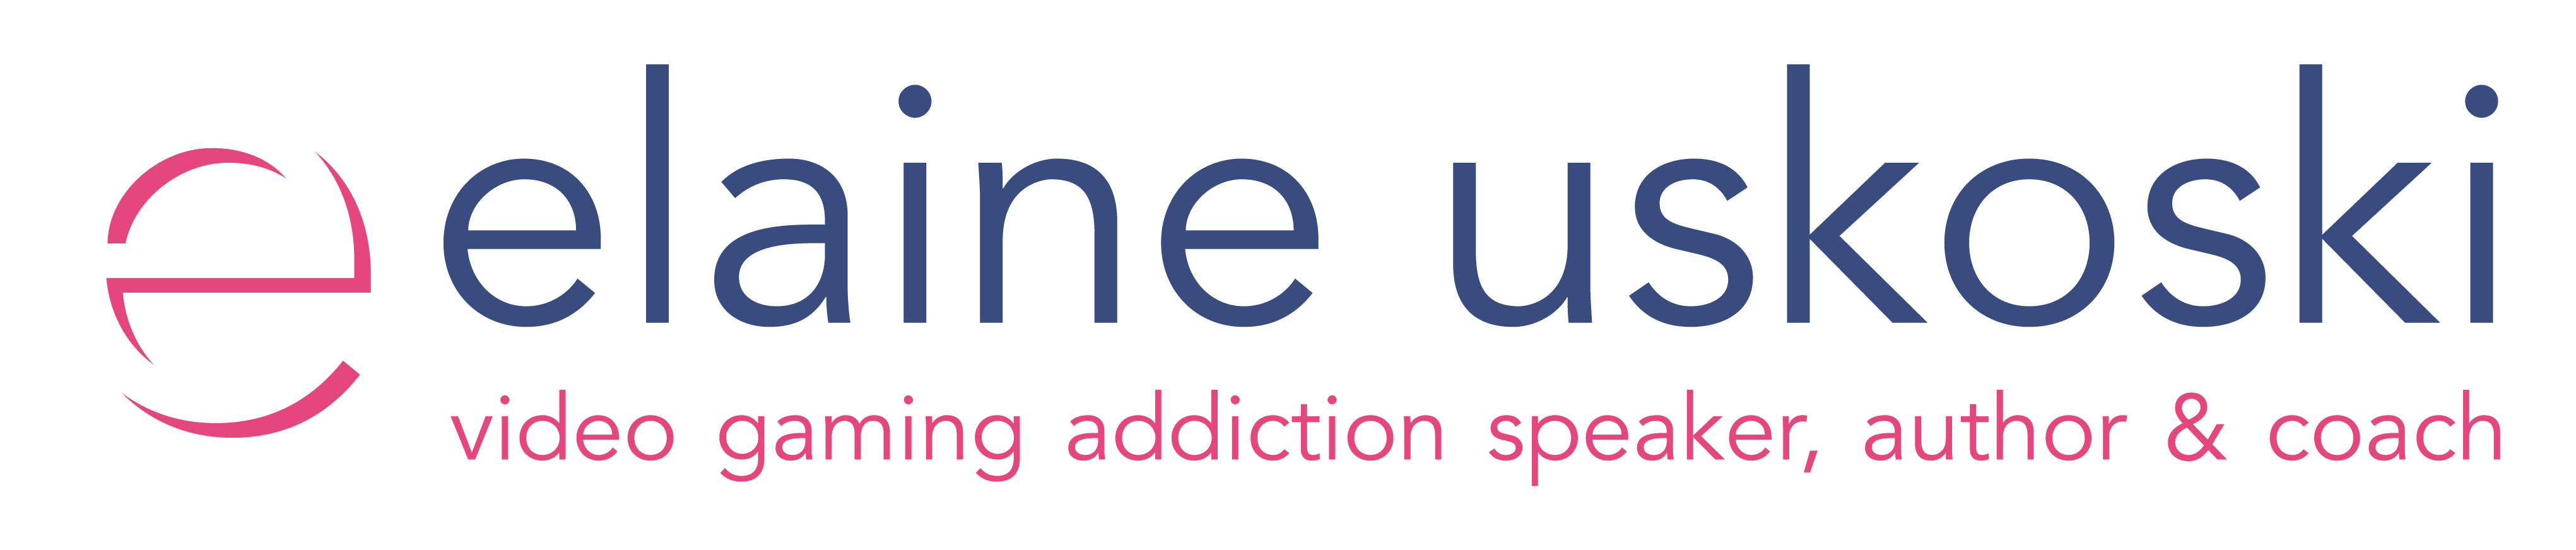 Elaine Uskoski -  Video Gaming Addiction Speaker, Author and Coach